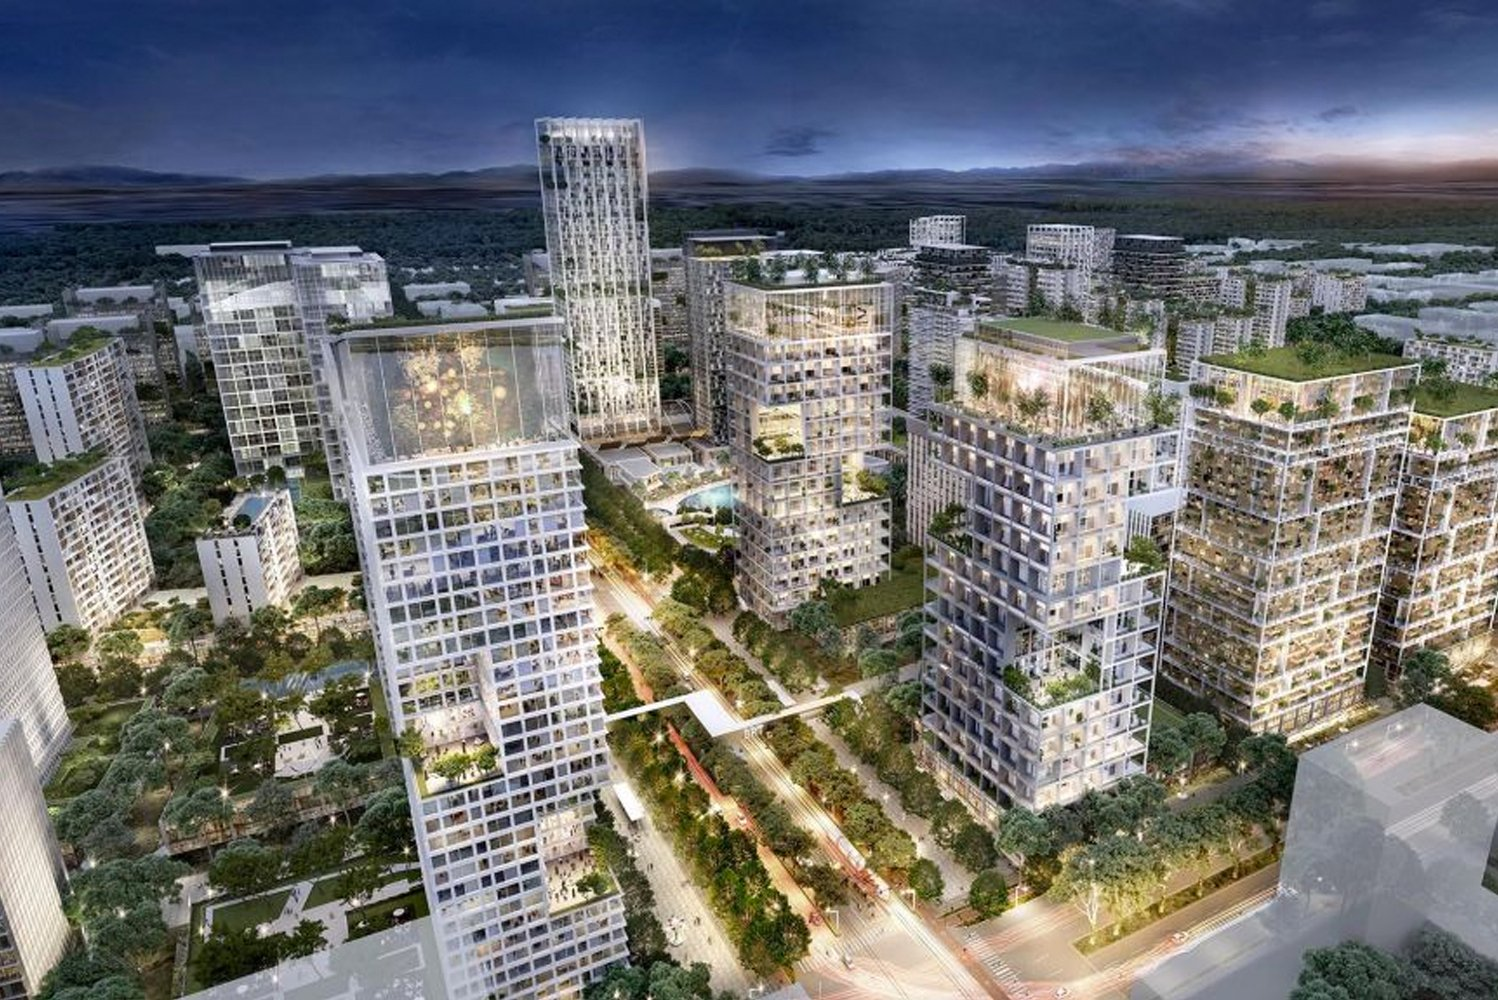 Developed to the north of the capital Manila on the site of a former military base, New Clark City is led by the Philippine Bases Conversion and Development Authority (BCDA) in partnership with a number of private developers.